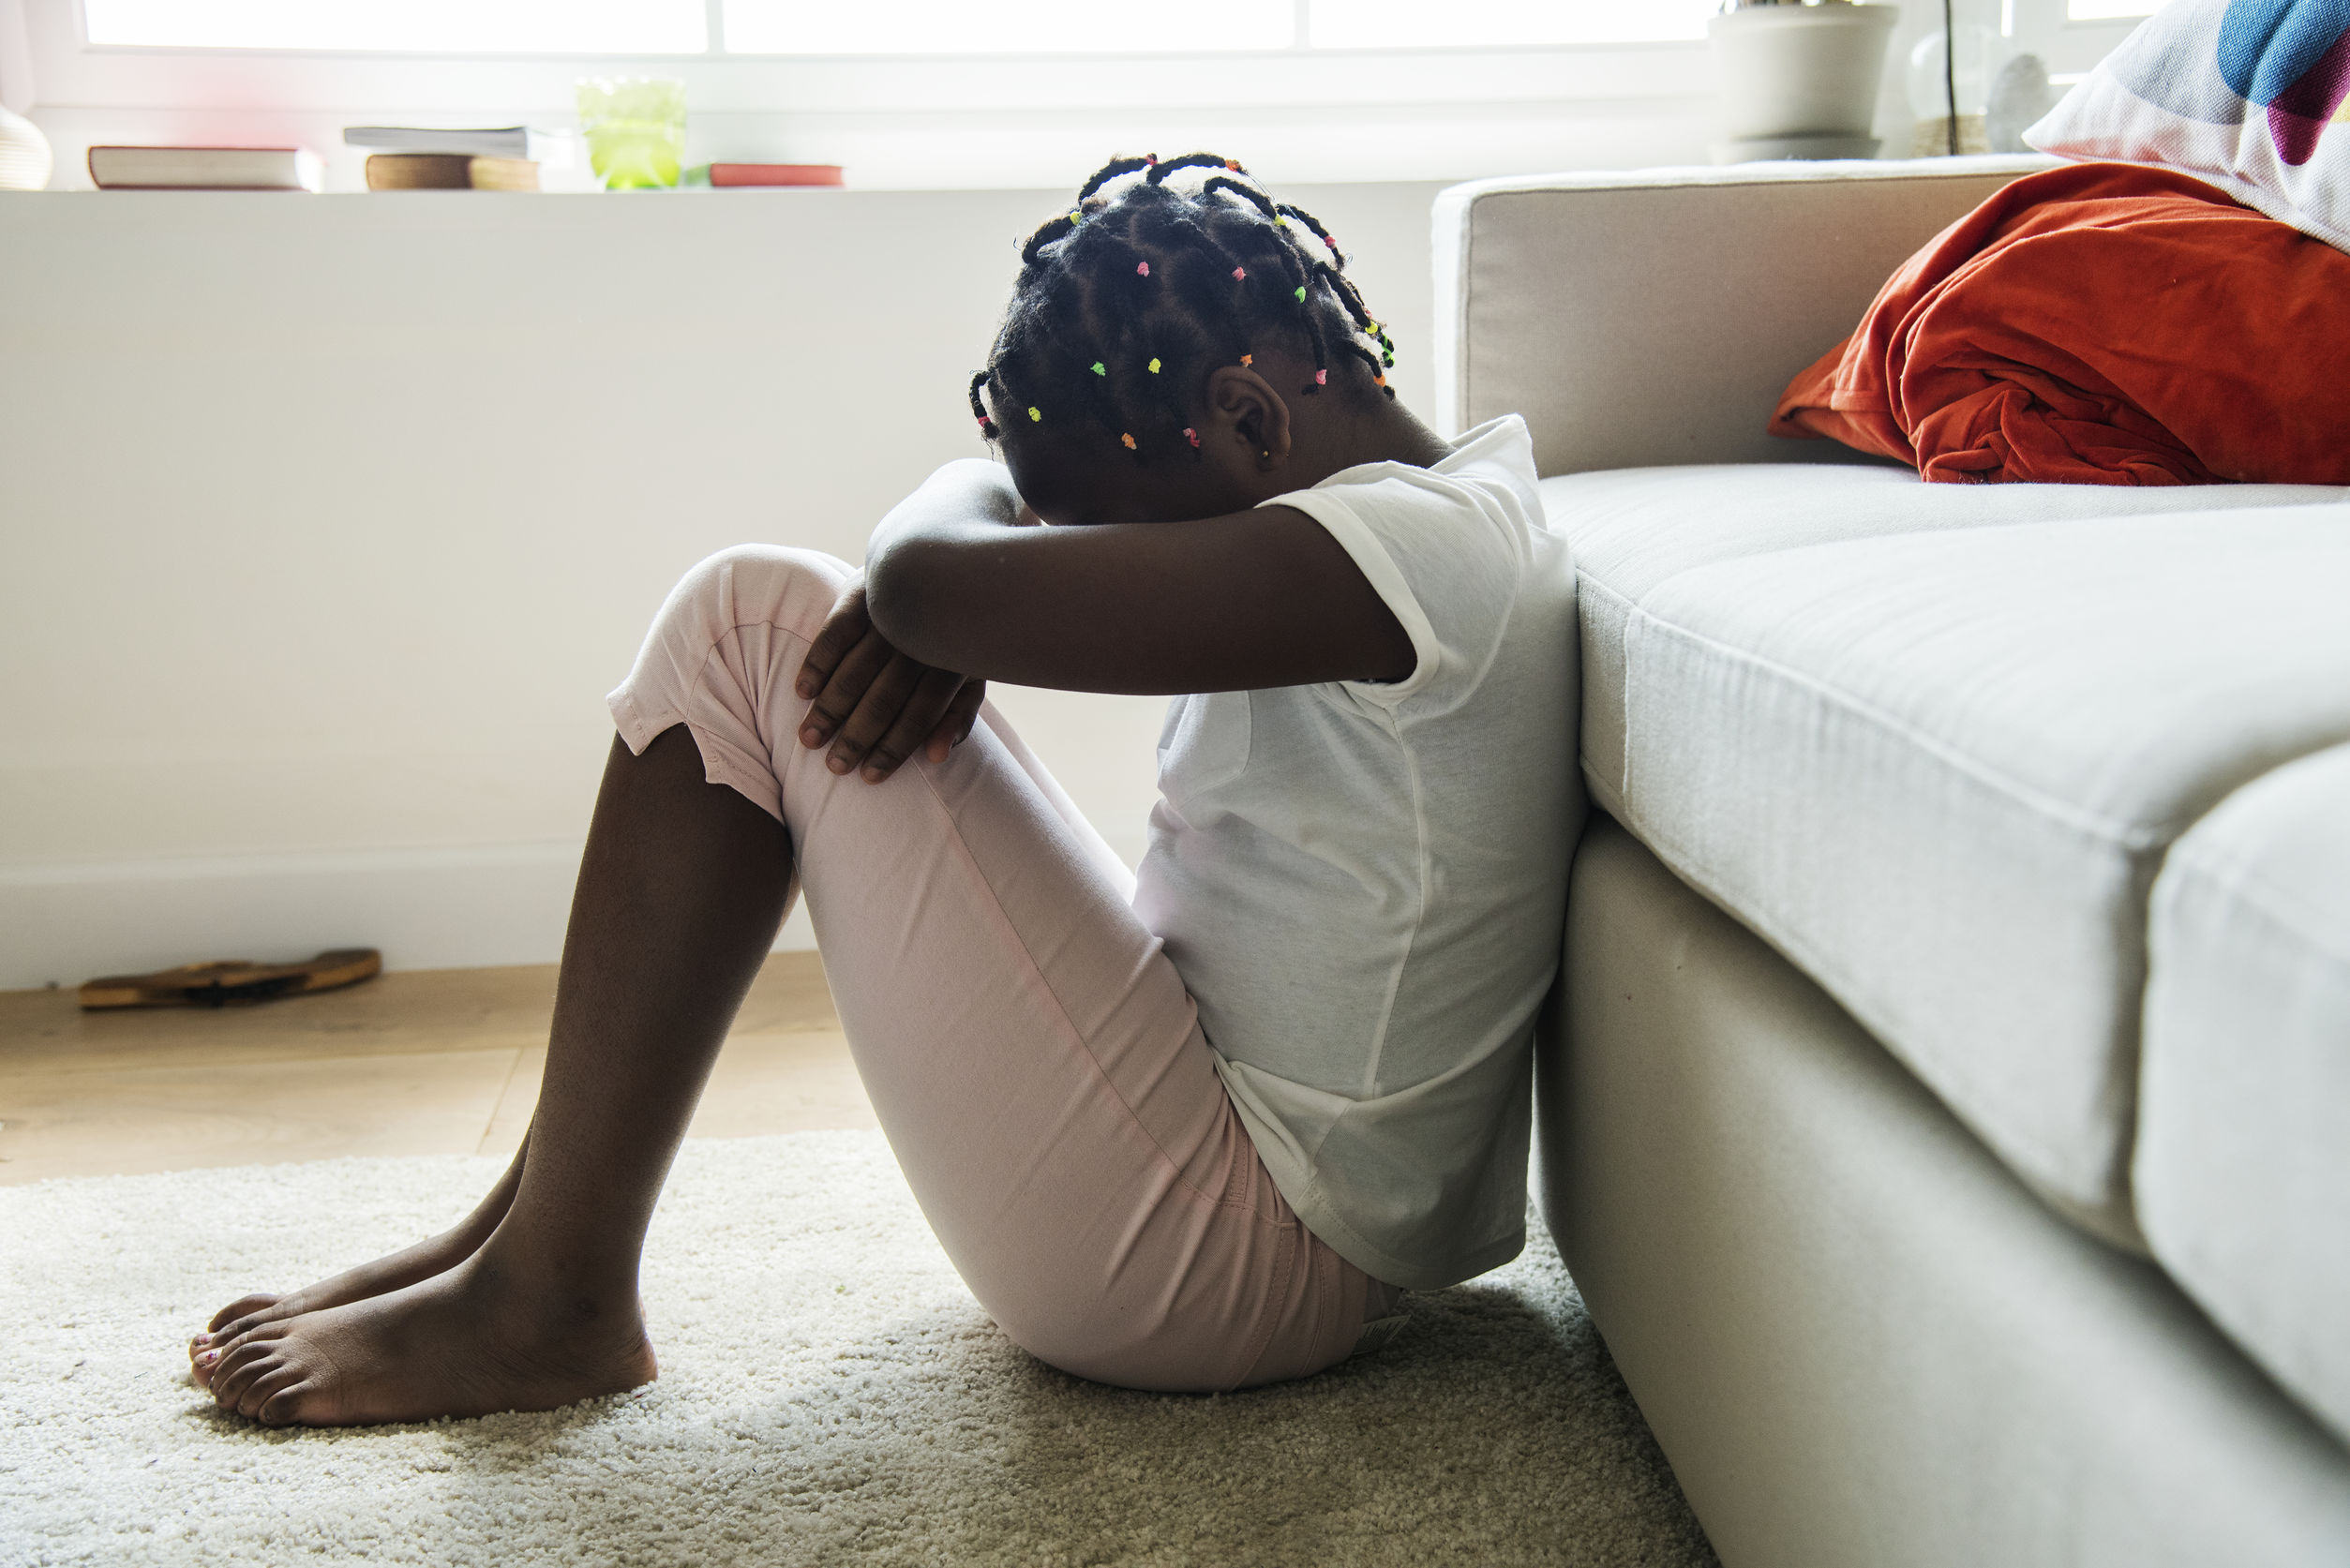 Upset young girl sat on the floor with low self-esteem after having female circumcision carried out when she was younger